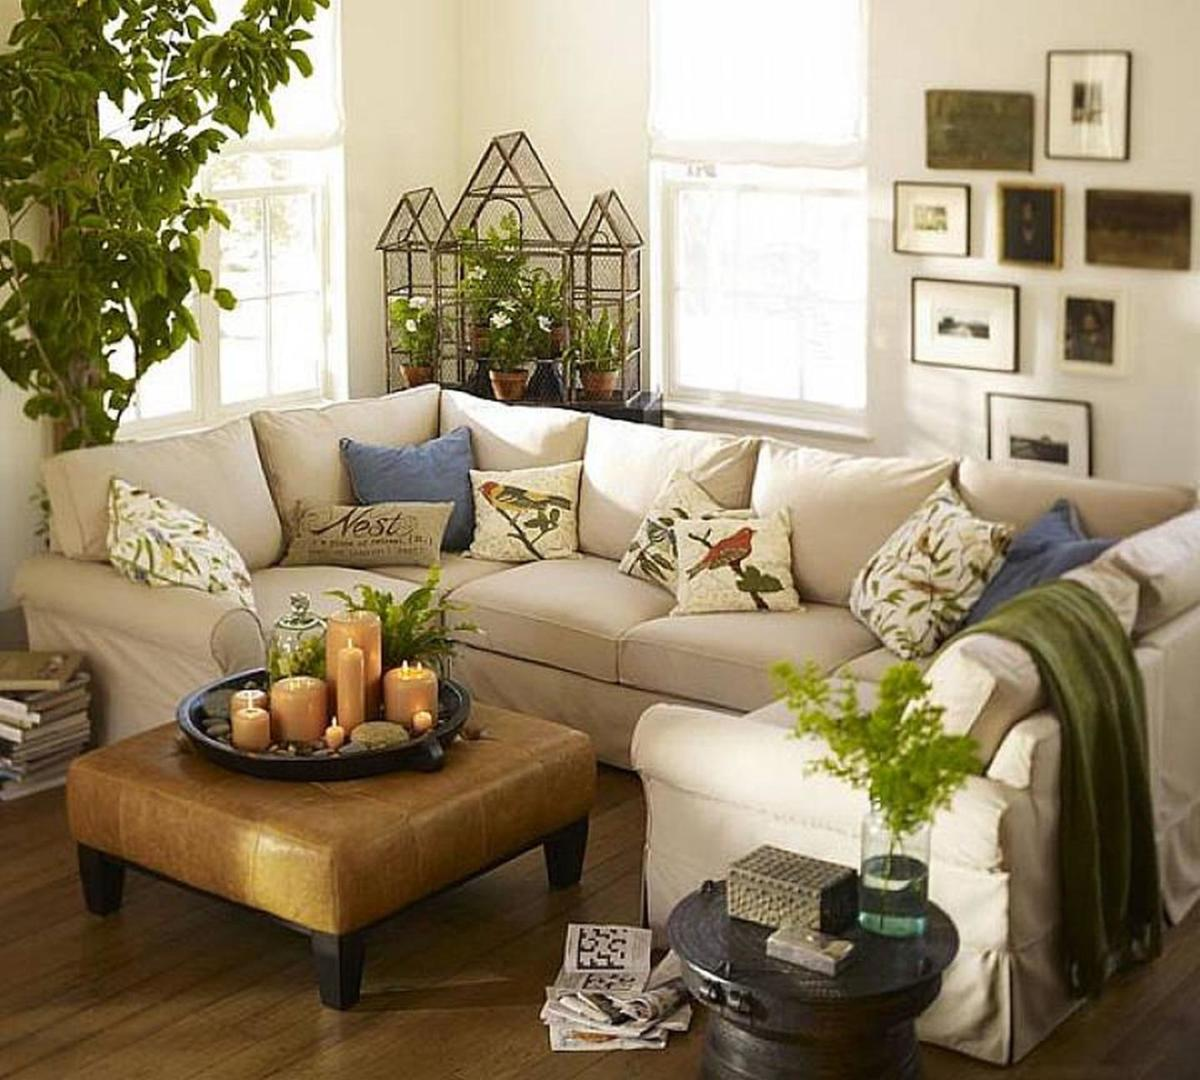 The Tiger living room should feel busy. There should be lots of patterns. A mix of white and green. Wooden furniture. And a sprawling sofa.